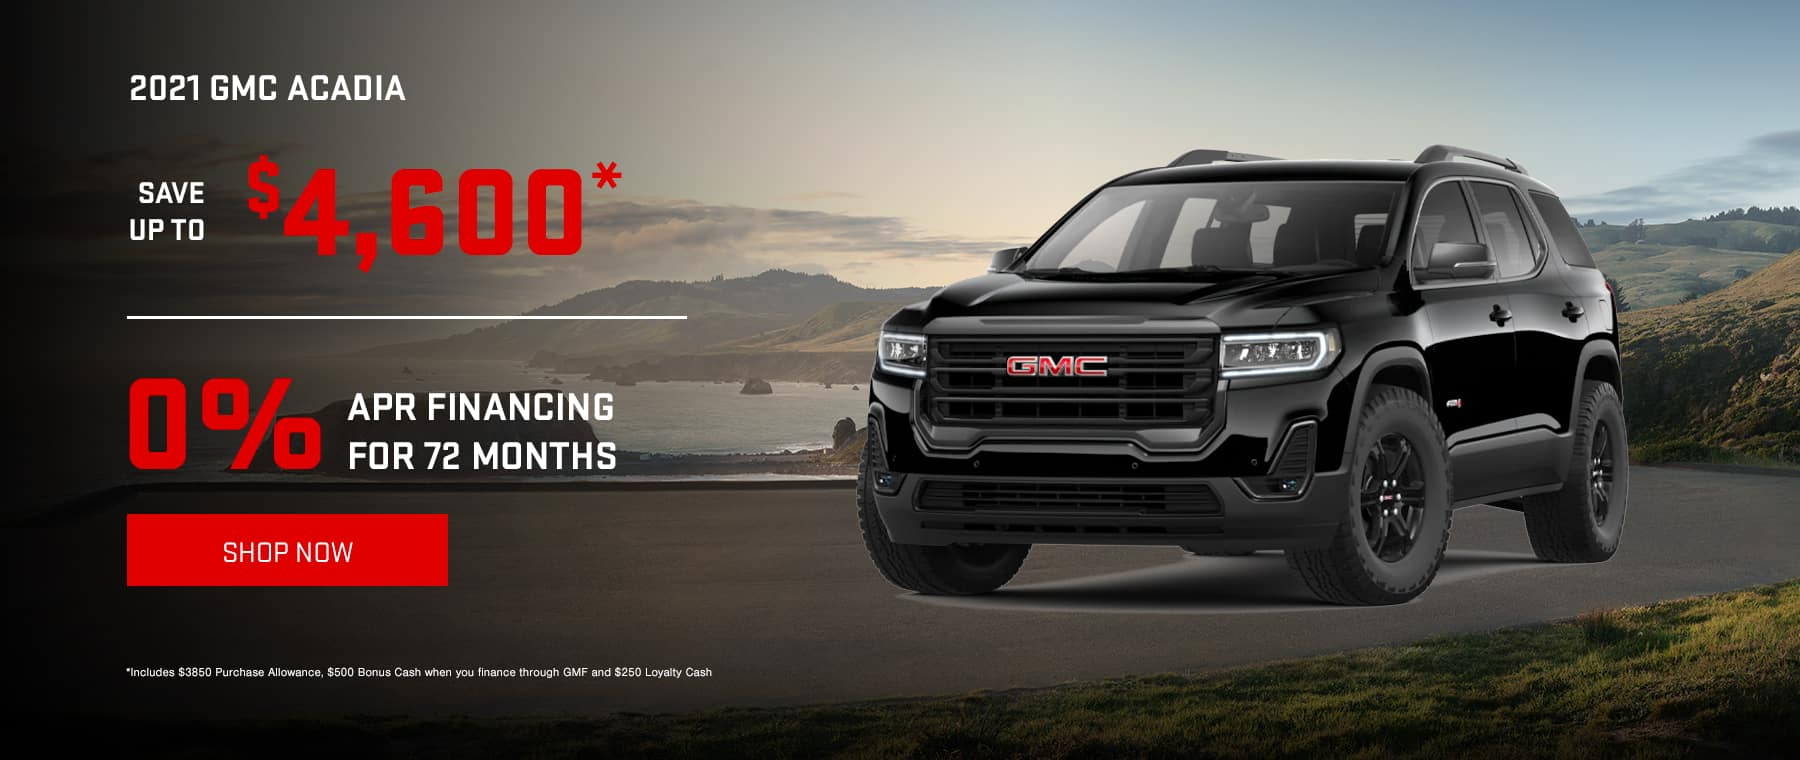 2021 GMC Acadia - Save up to $4600* OR Get 0% Financing for 72 months